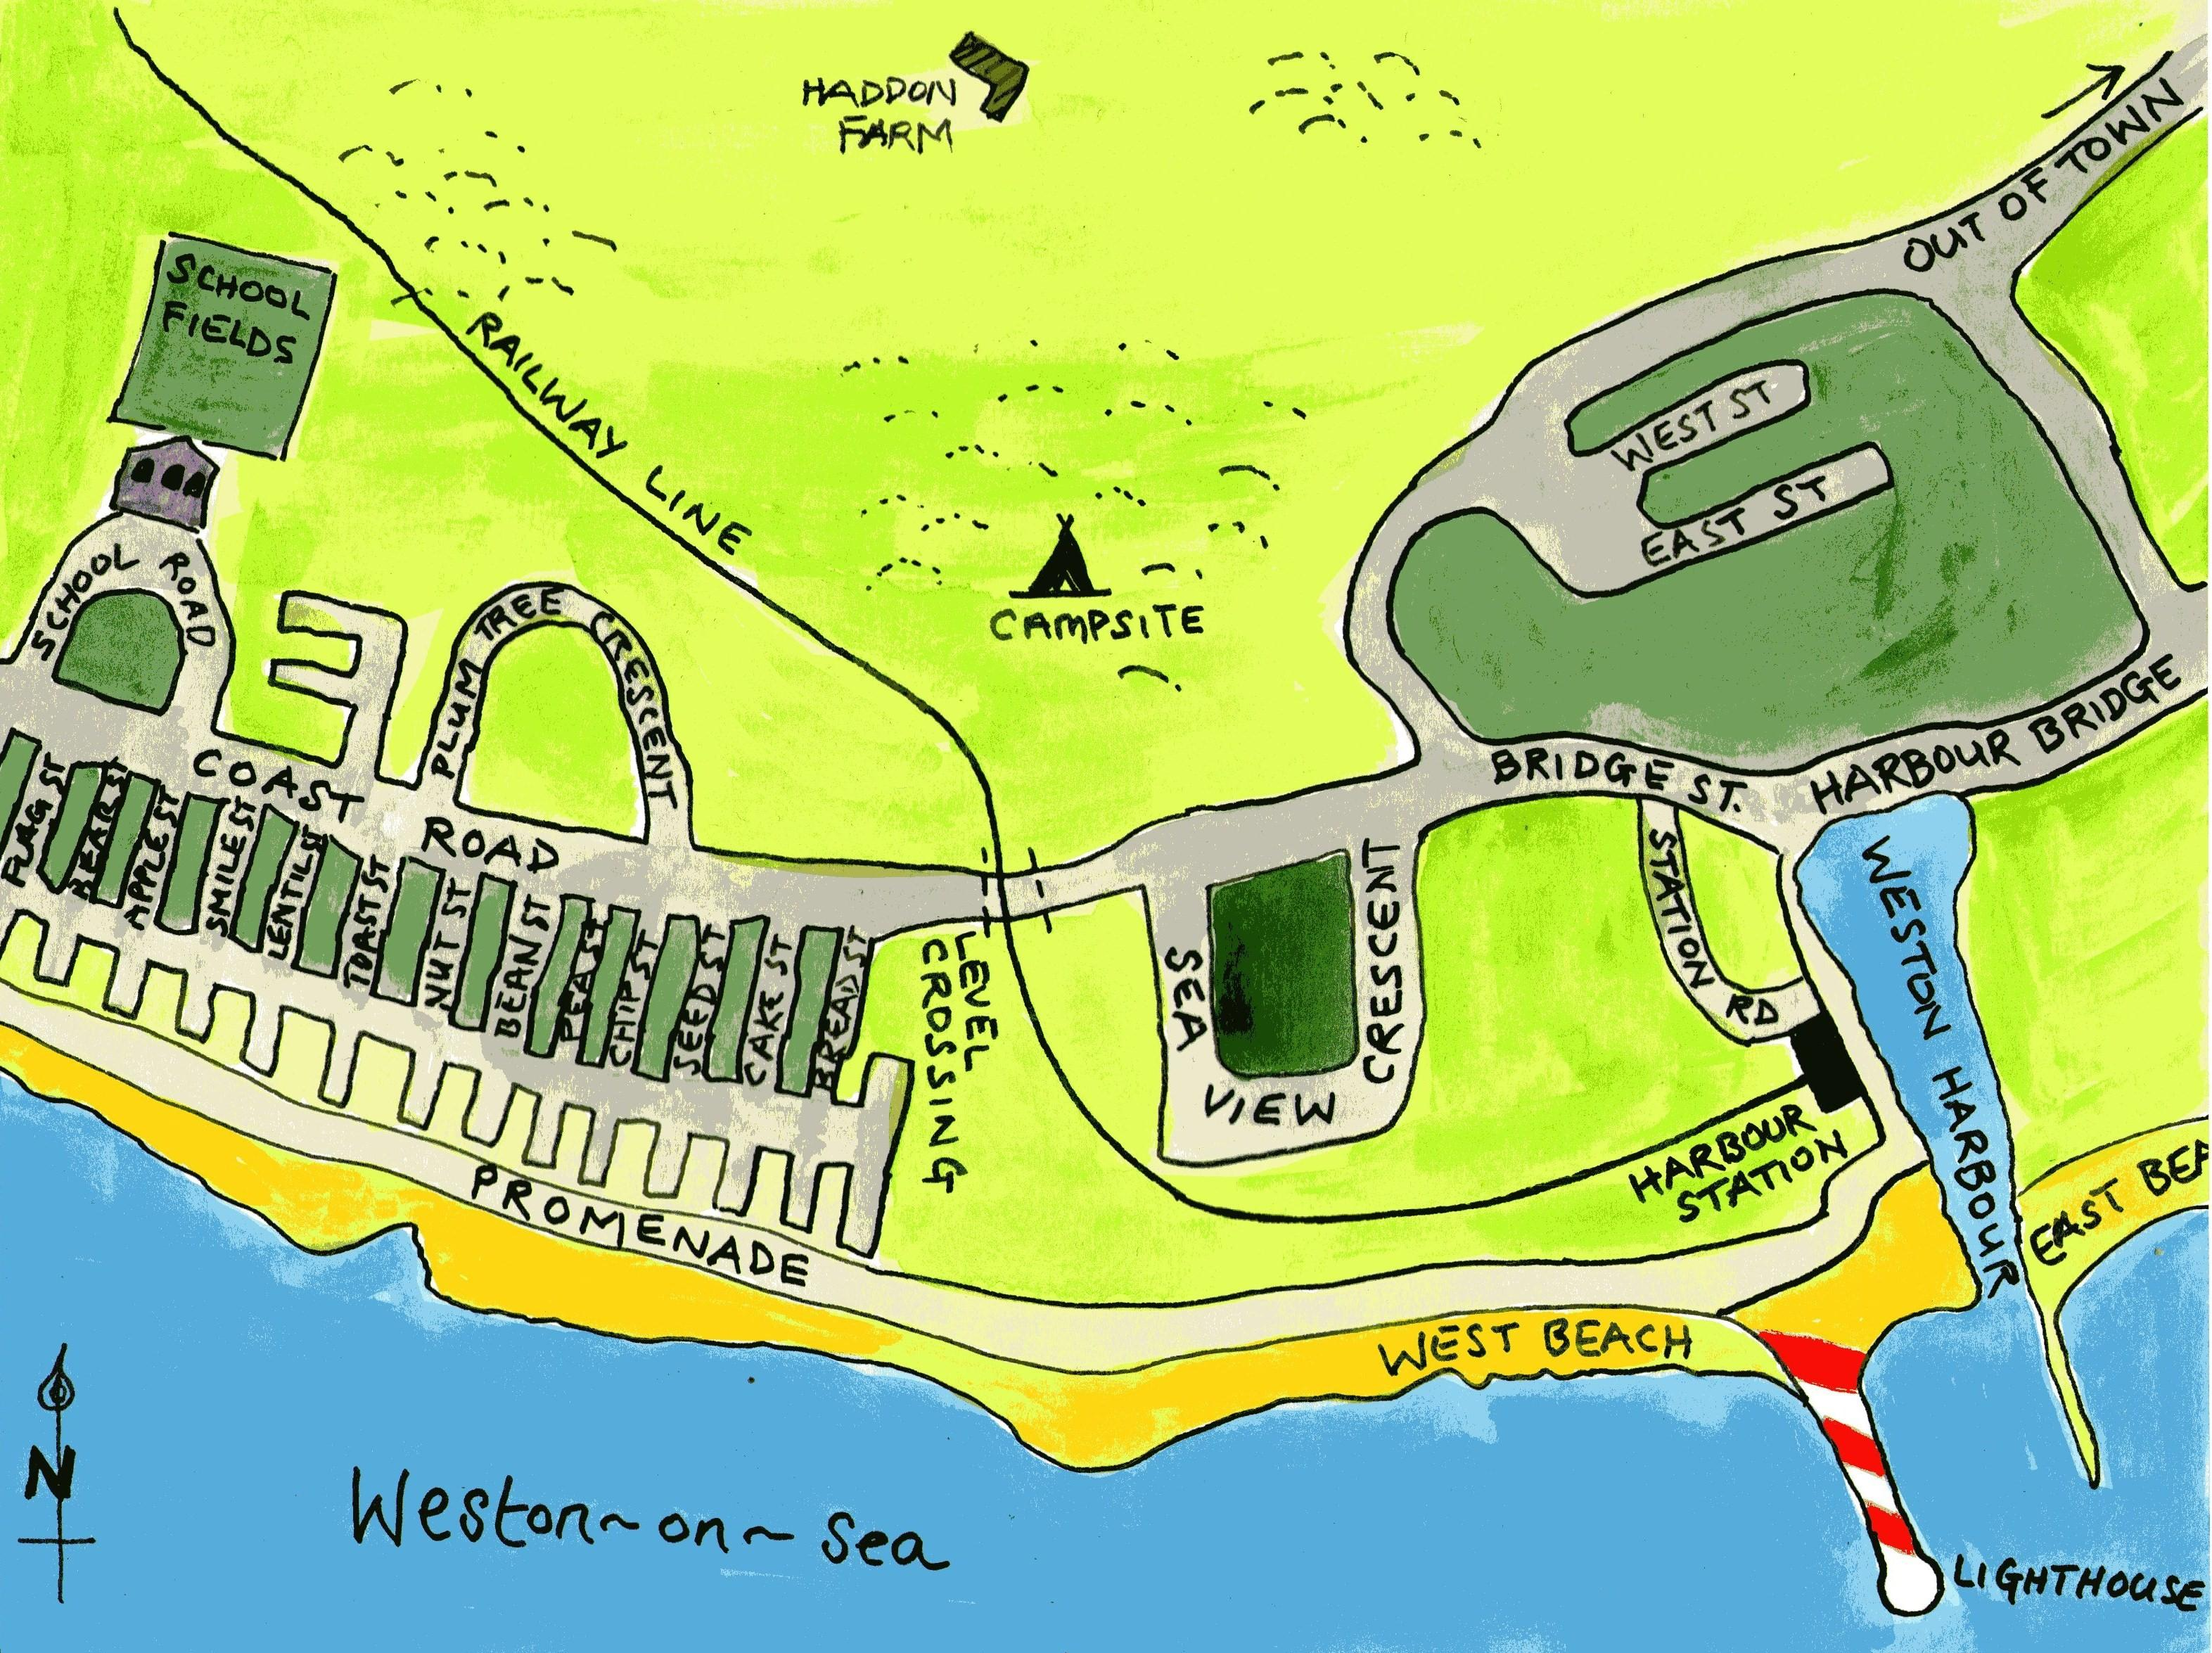 This is Venus's home town, Weston-on-sea